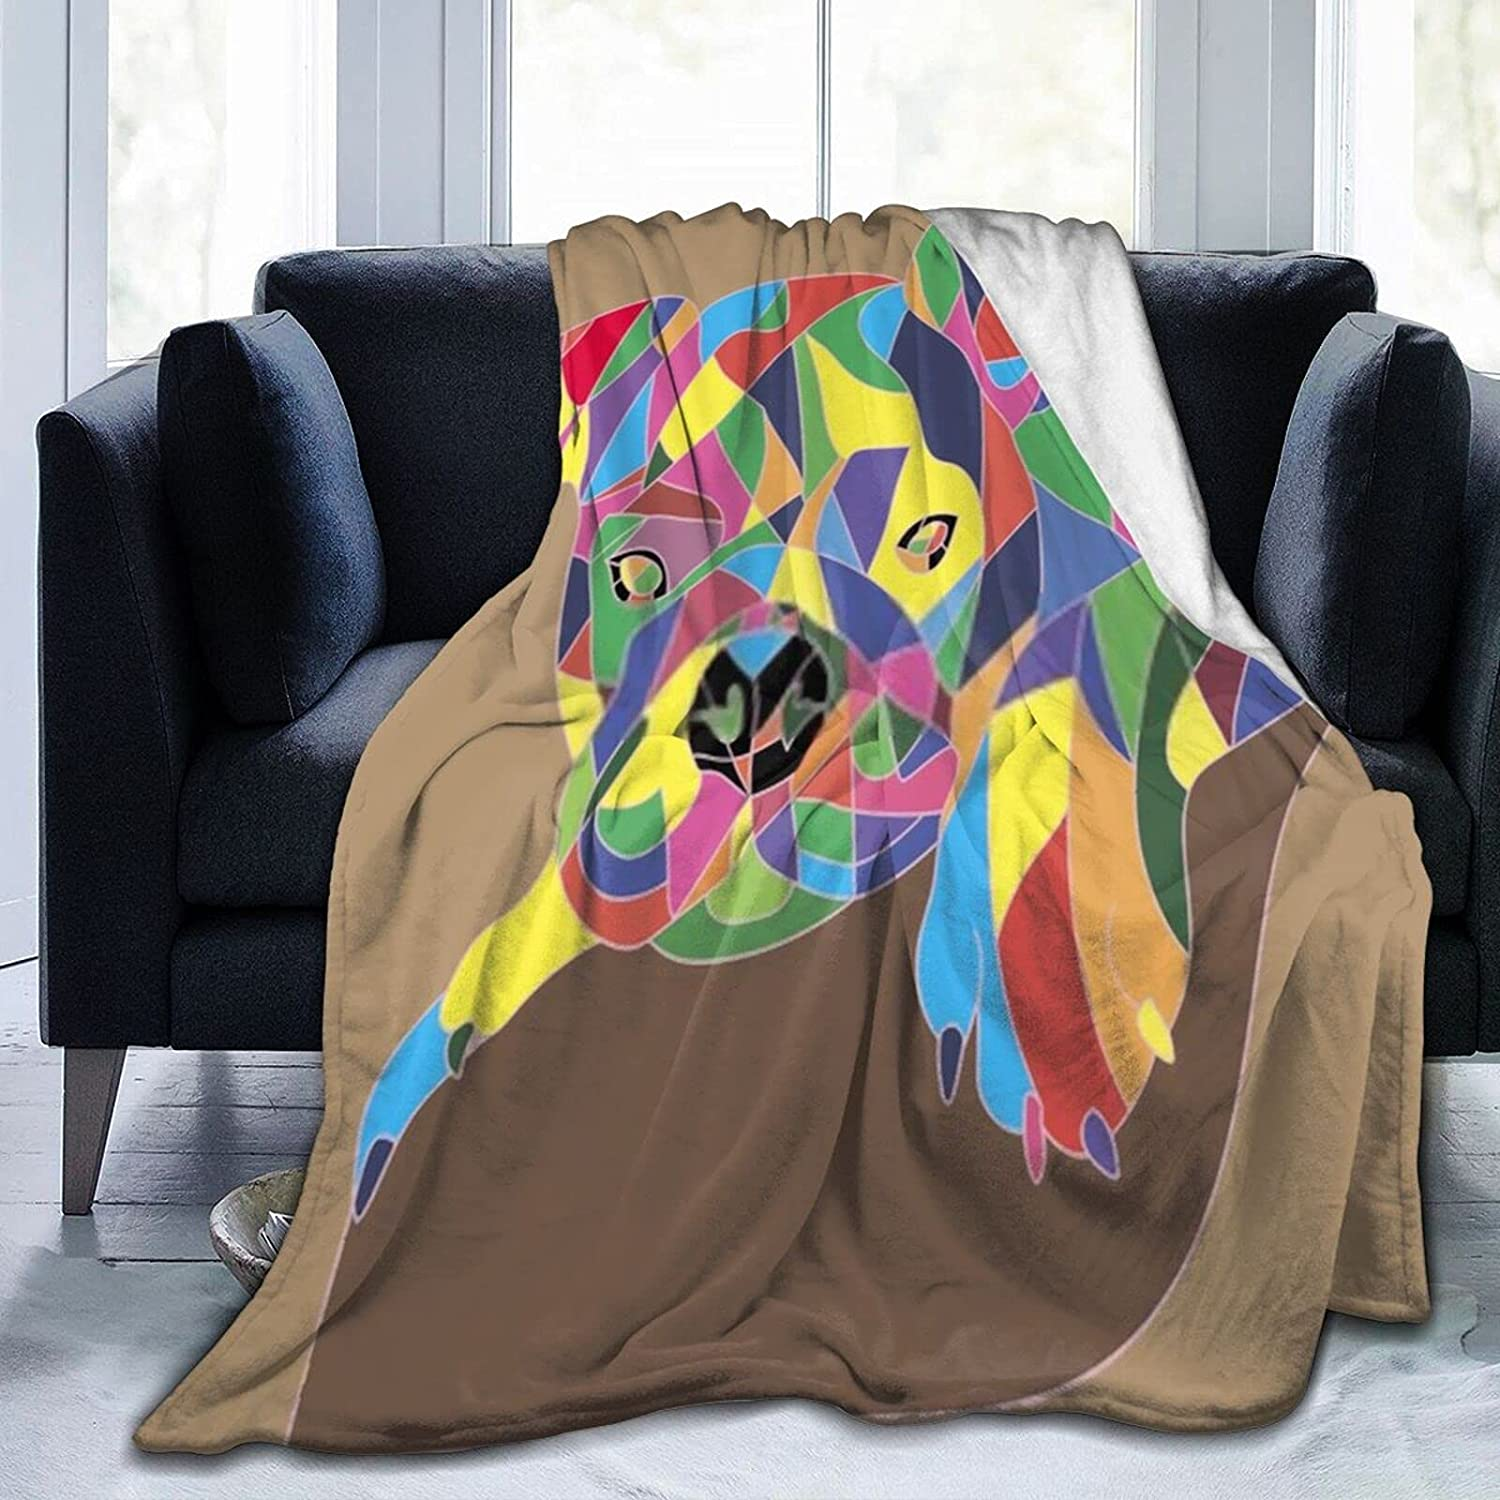 Tampa Mall Proud Quantity limited Dog Paws1 Blanket Soft Micro Comfortable Super Wo and